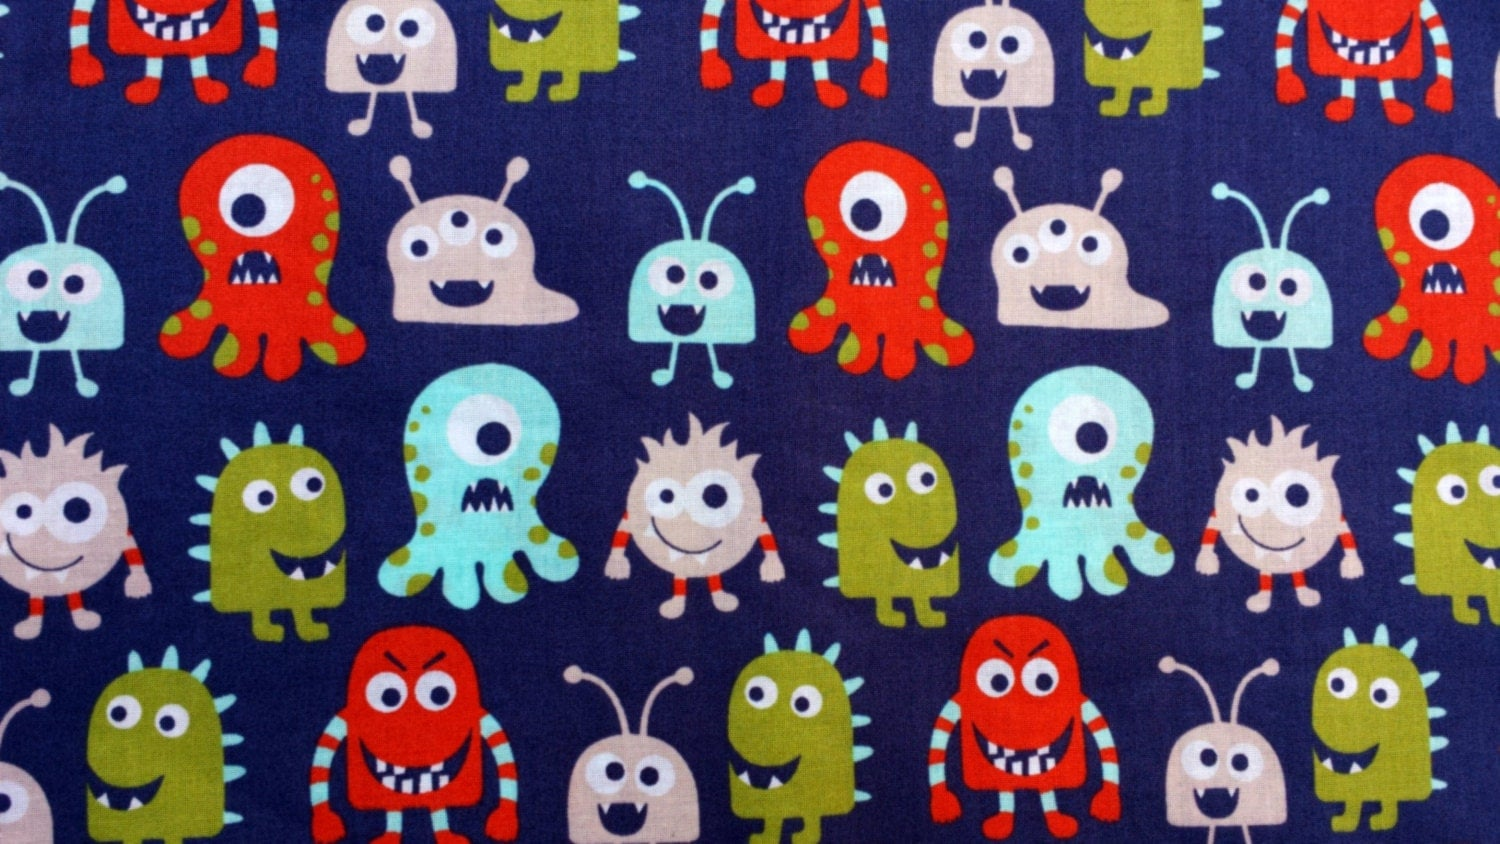 Monsters kid 39 s fabric boy fabric baby by littlelauraloucrafts for Baby monster fabric